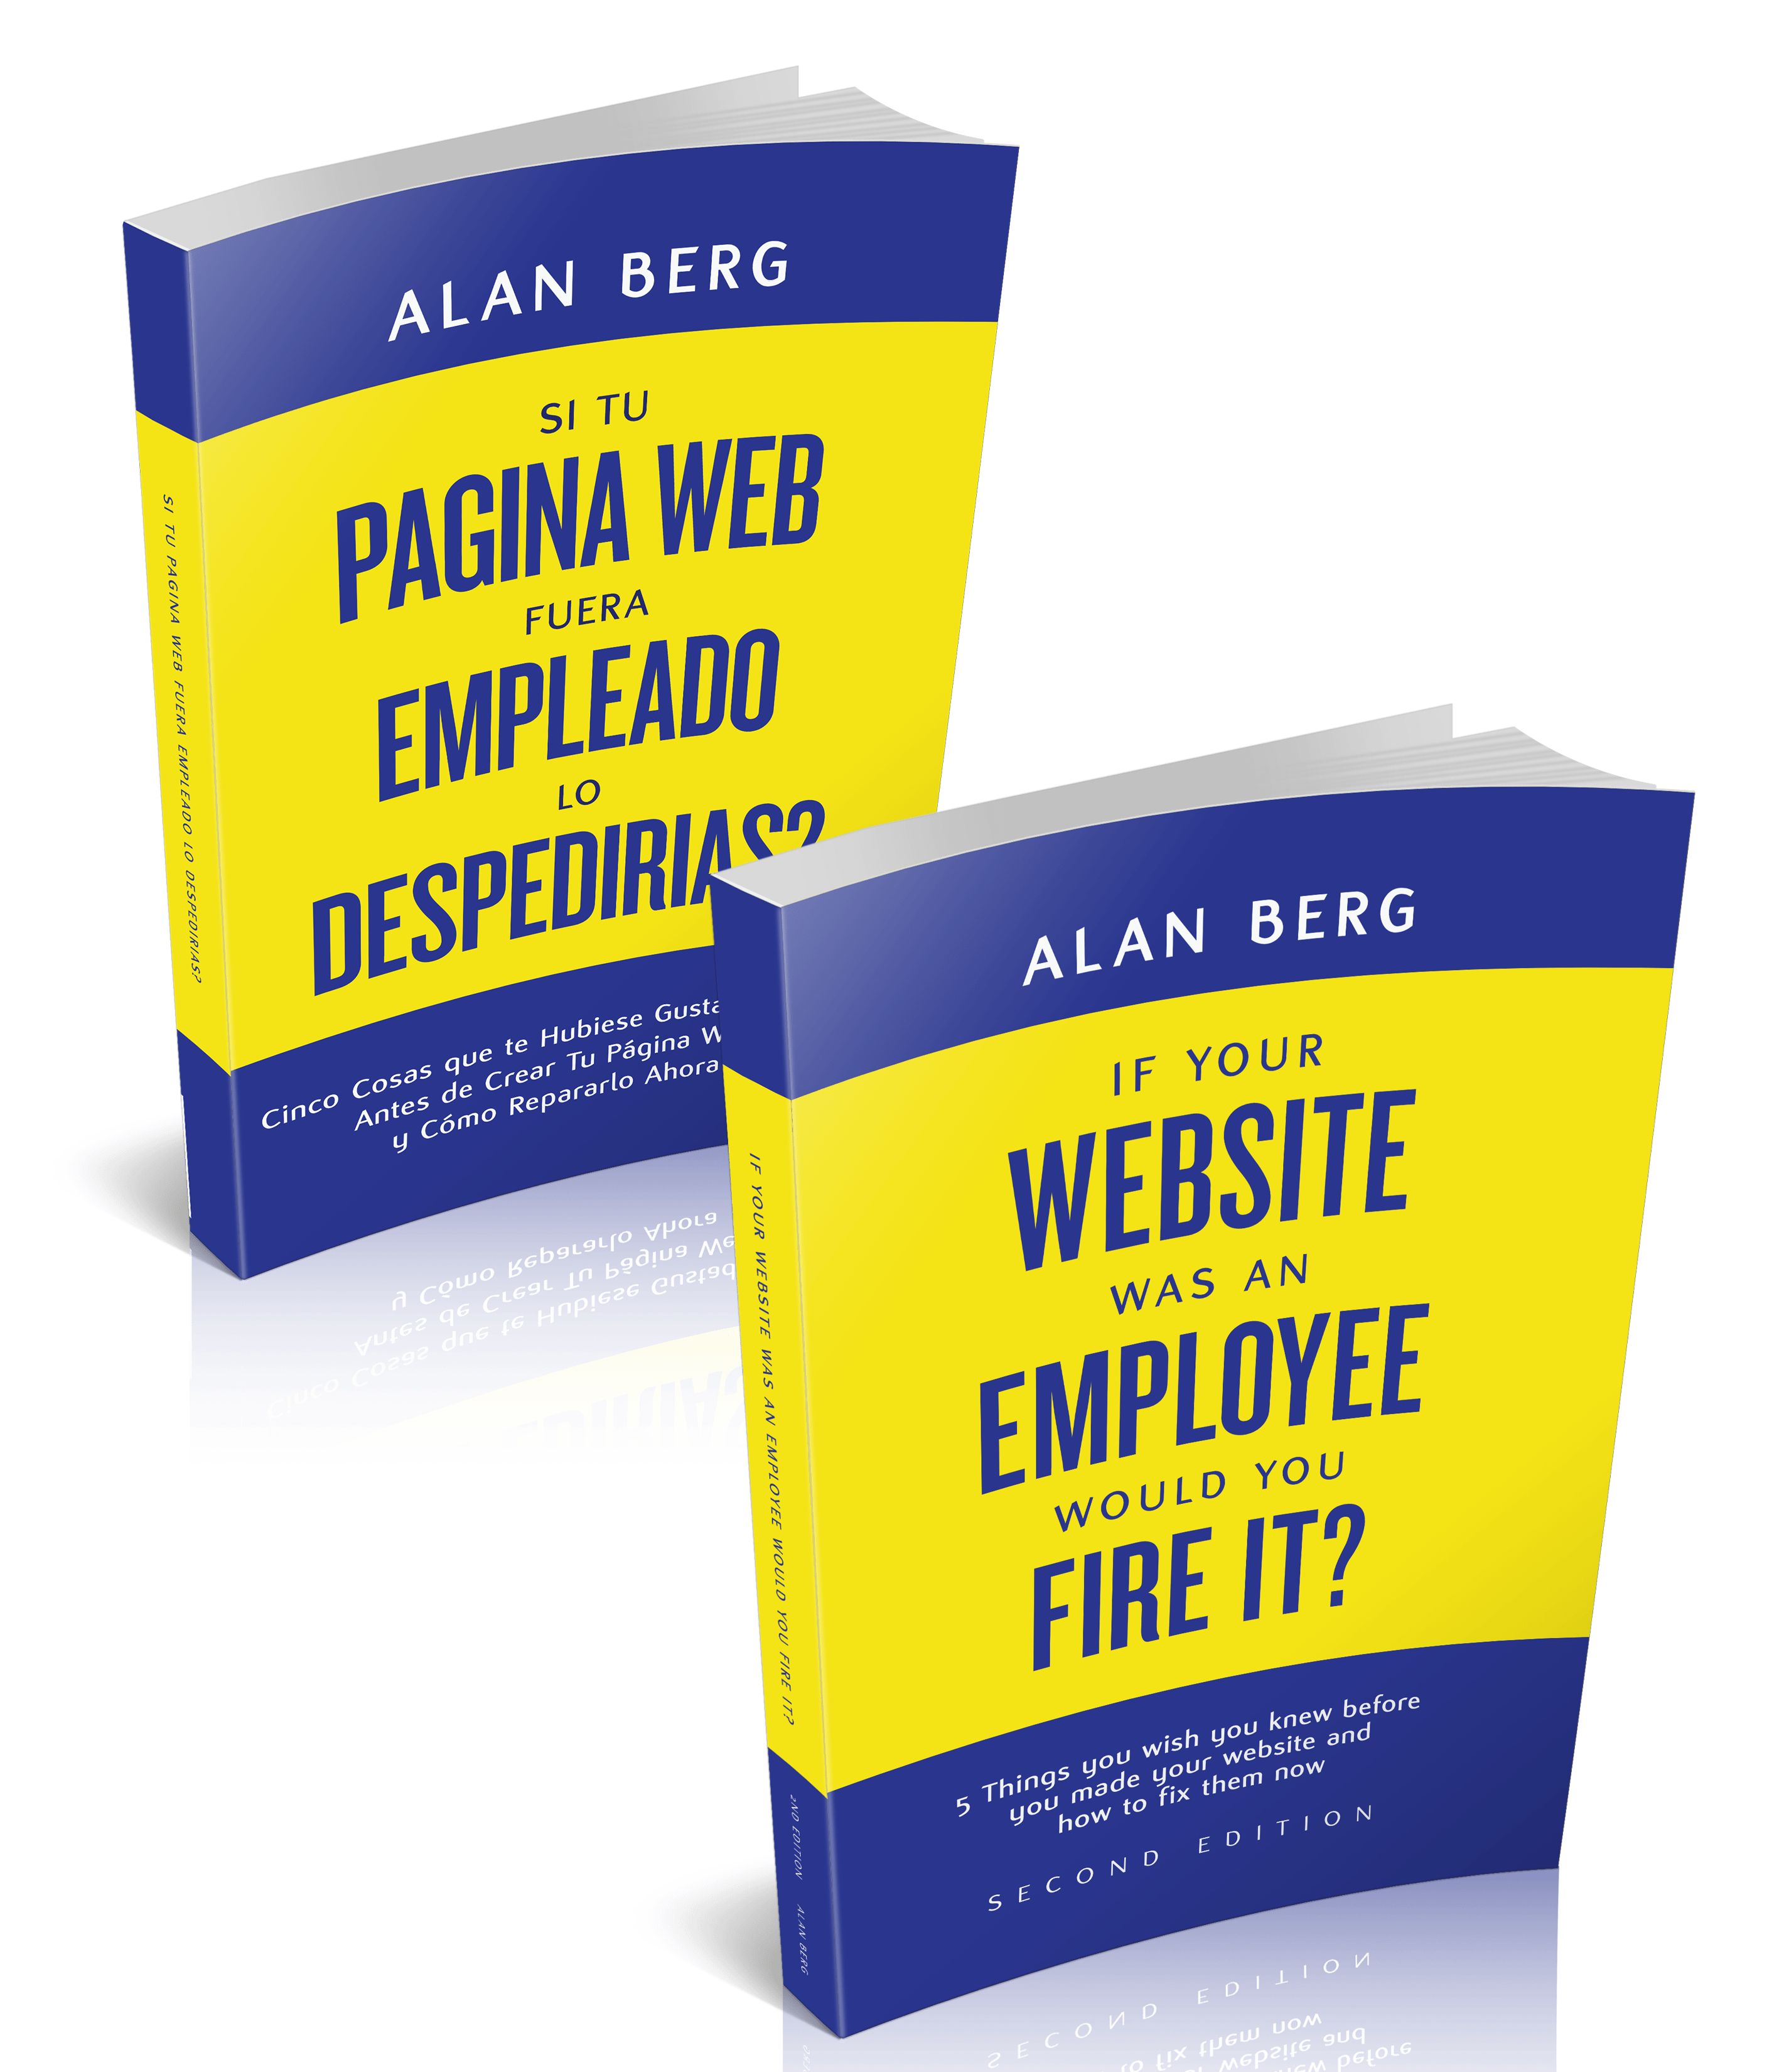 If Your Website Was An Employee Would You Fire It English & Spanish